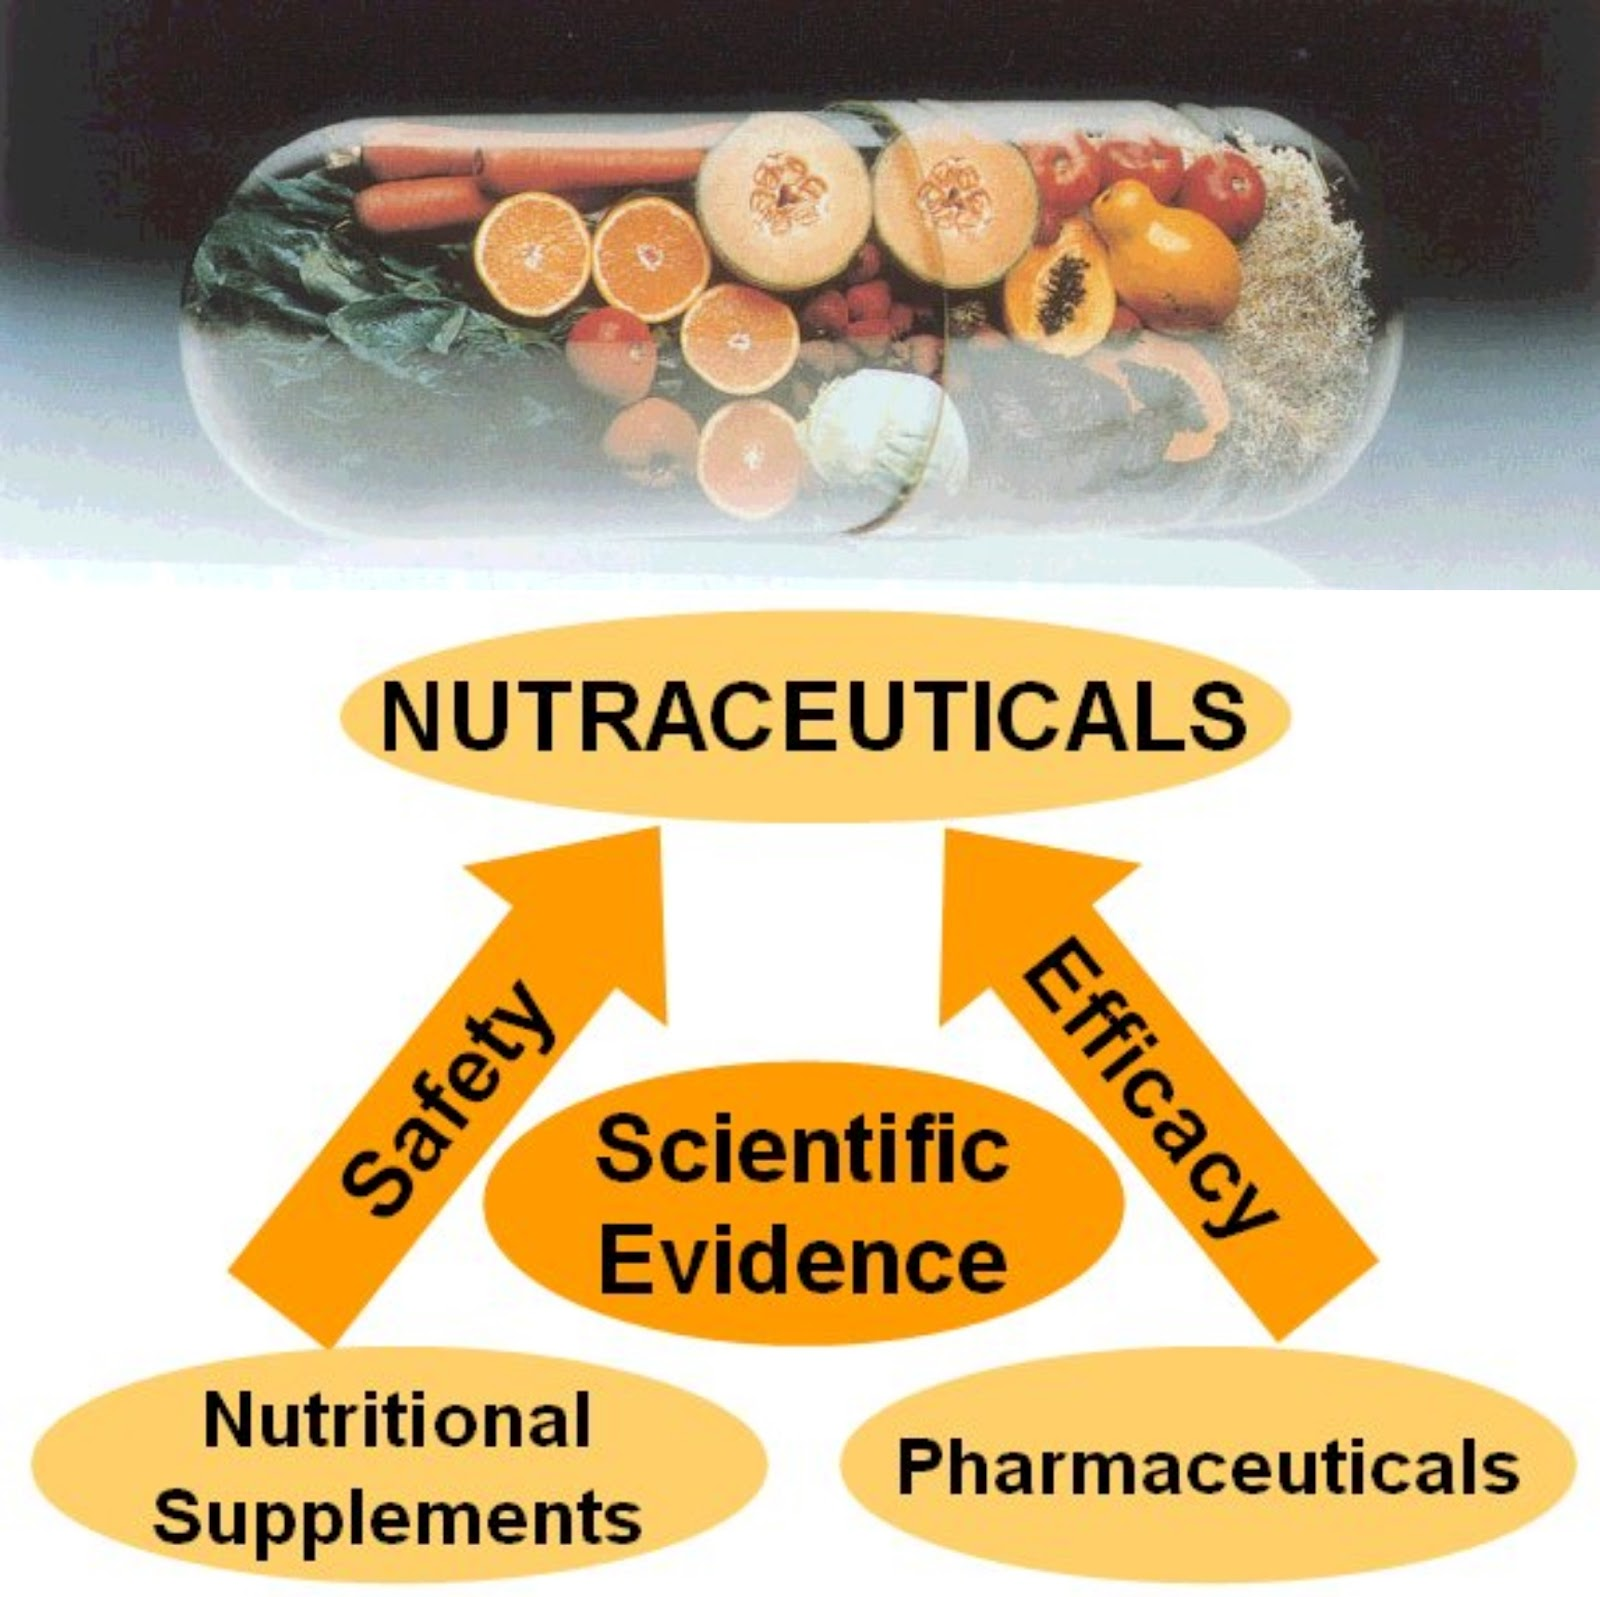 APPLICATIONS OF NUTRACEUTICALS EBOOK